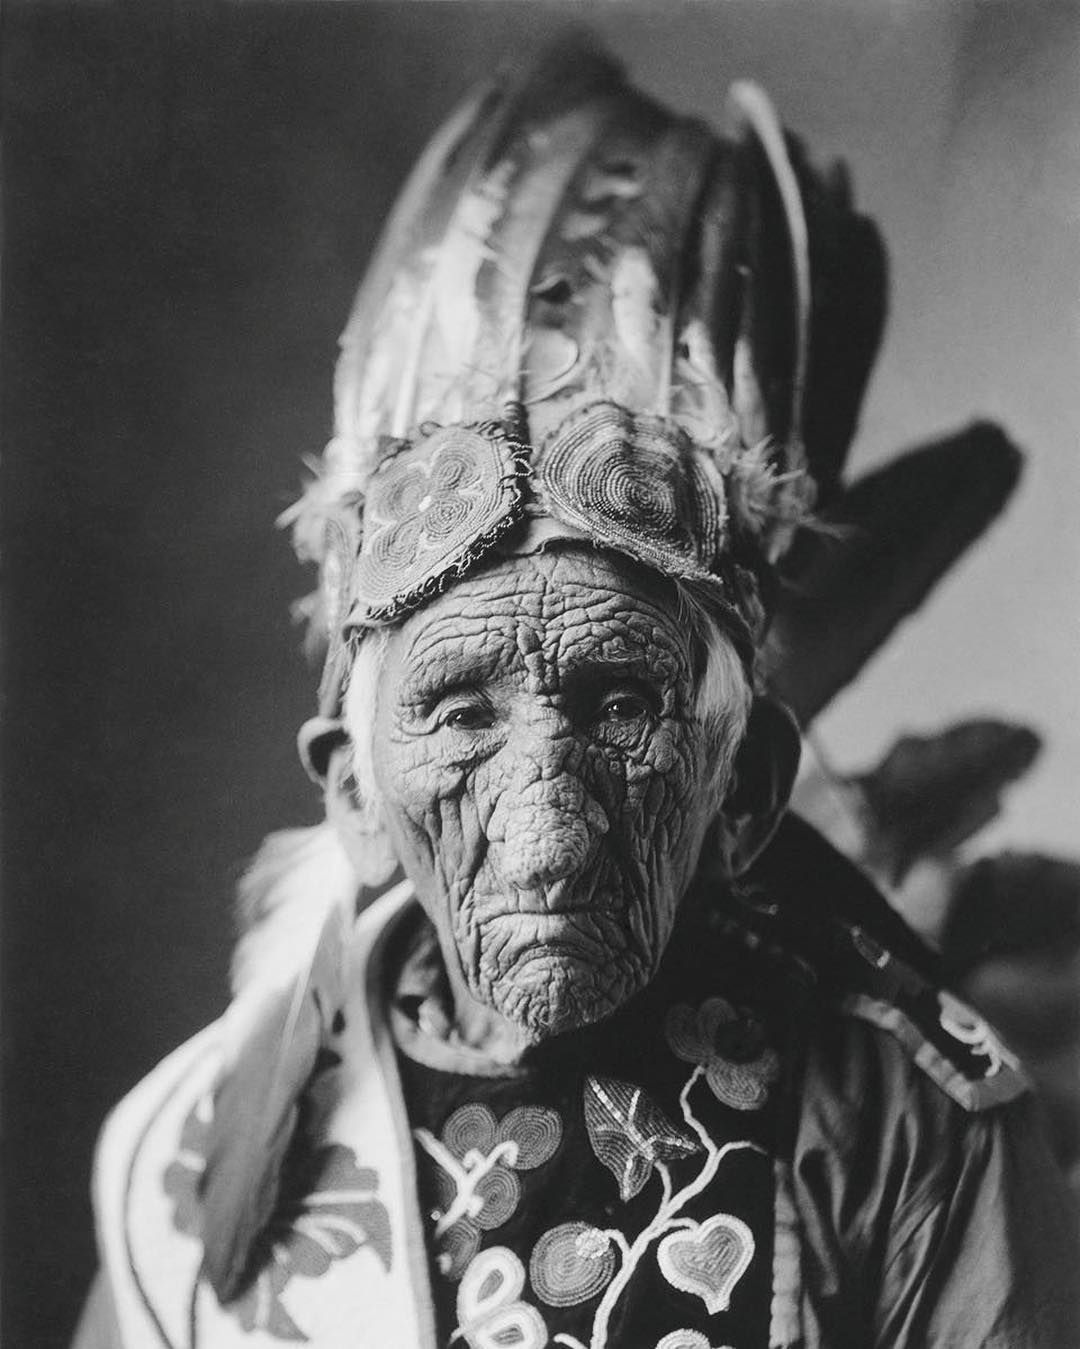 Chief John Smith A Chippewa Whose Tribe Populated The